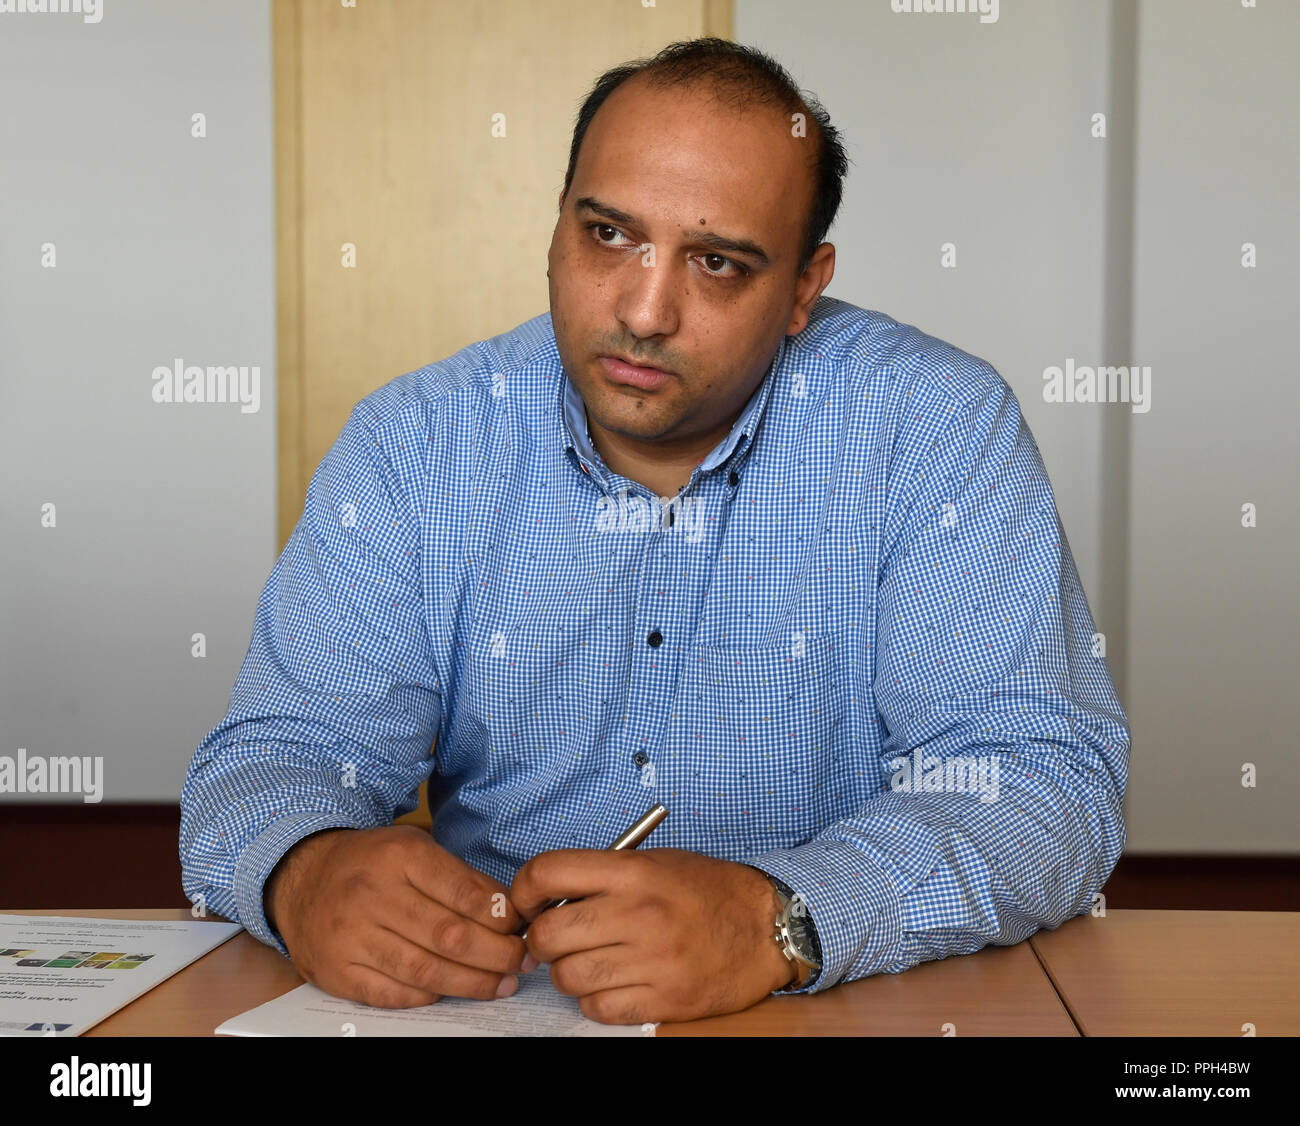 Director of the Czech Government Agency for Social Inclusion, Social Democrat (CSSD) David Benak gives an interview to Czech News Agency in Prague, Czech Republic, on September 21, 2018. Benak, who comes from a Roma family, first went to a vocational school of mechanical engineering in Most, north Bohemia, where he passed his secondary school-leaving exam in 1998. Then he graduated from the Social and Legal College and studied pedagogy at the Faculty of Arts of Charles University in Prague.From 2005 to 2015, Benak worked at the Prague 14 Town Hall where he headed the social section. From June - Stock Image